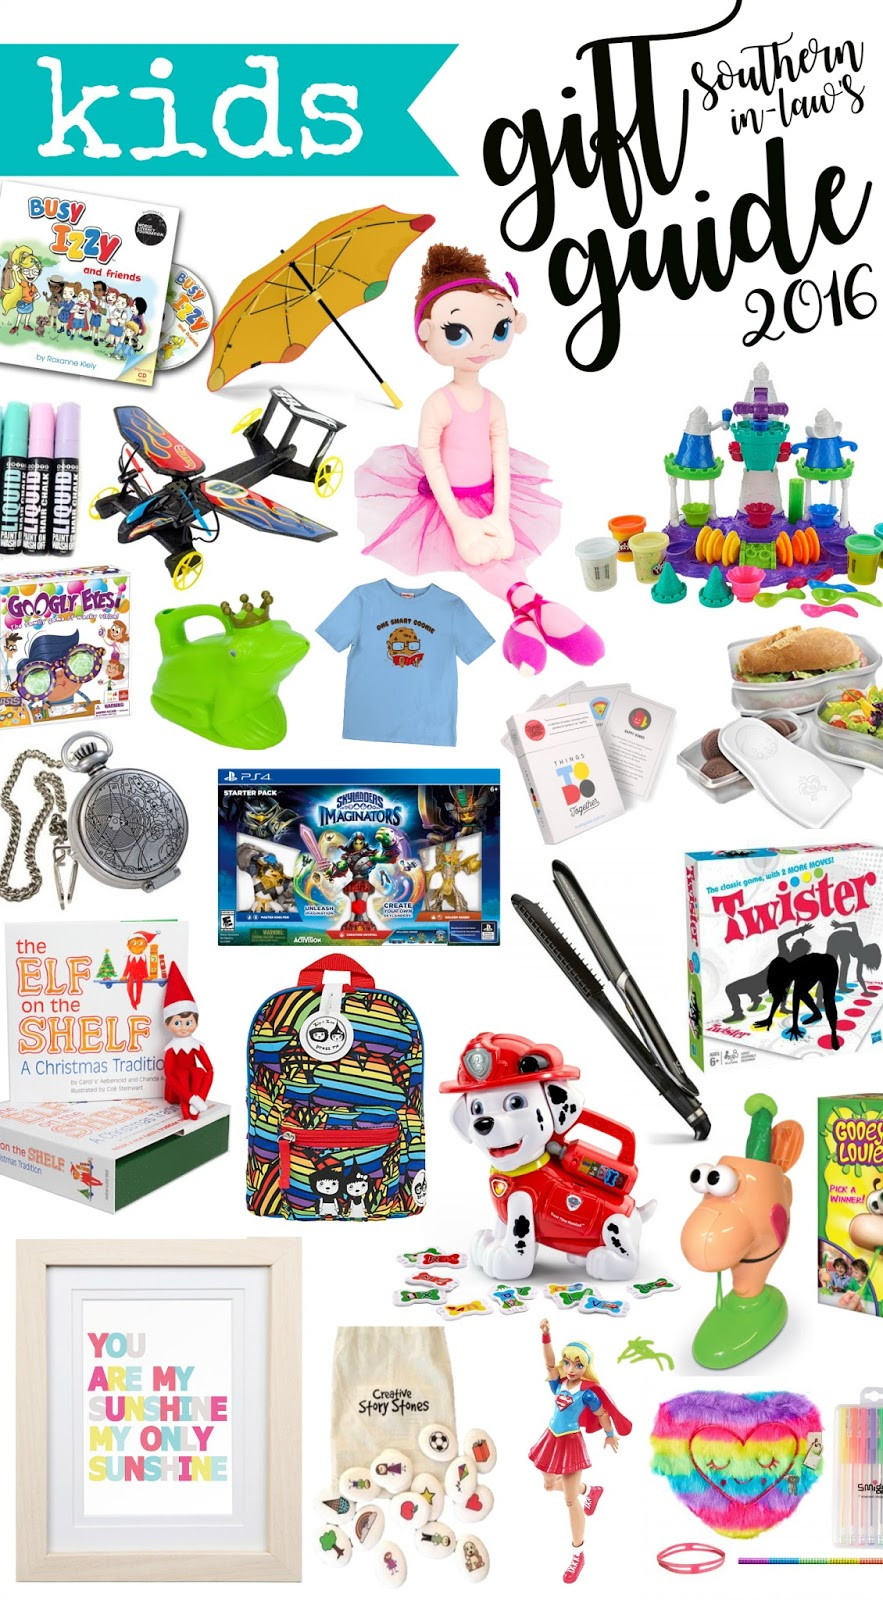 Popular Gifts For Kids  Southern In Law 2016 Kids Christmas Gift Guide